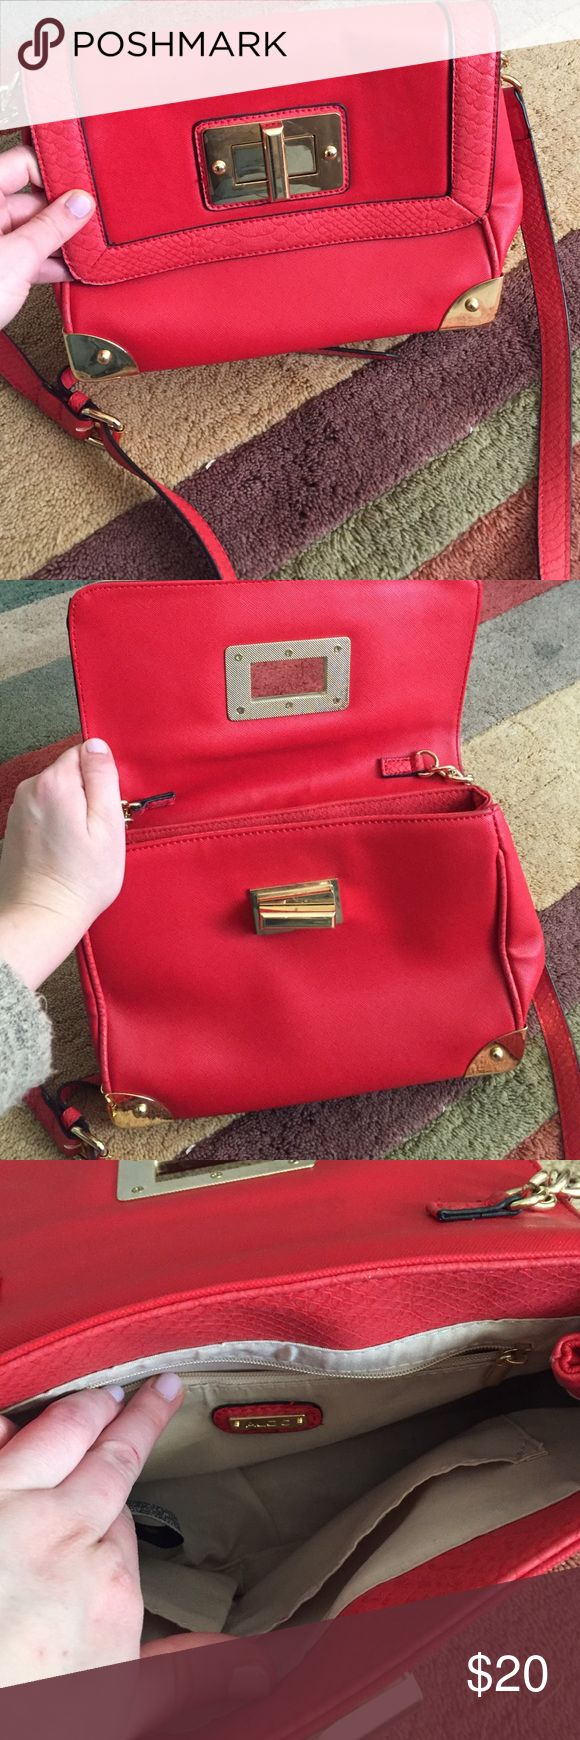 Aldo purse Red ALDO purse that is used but in great condition ! ALDO Bags Shoulder Bags